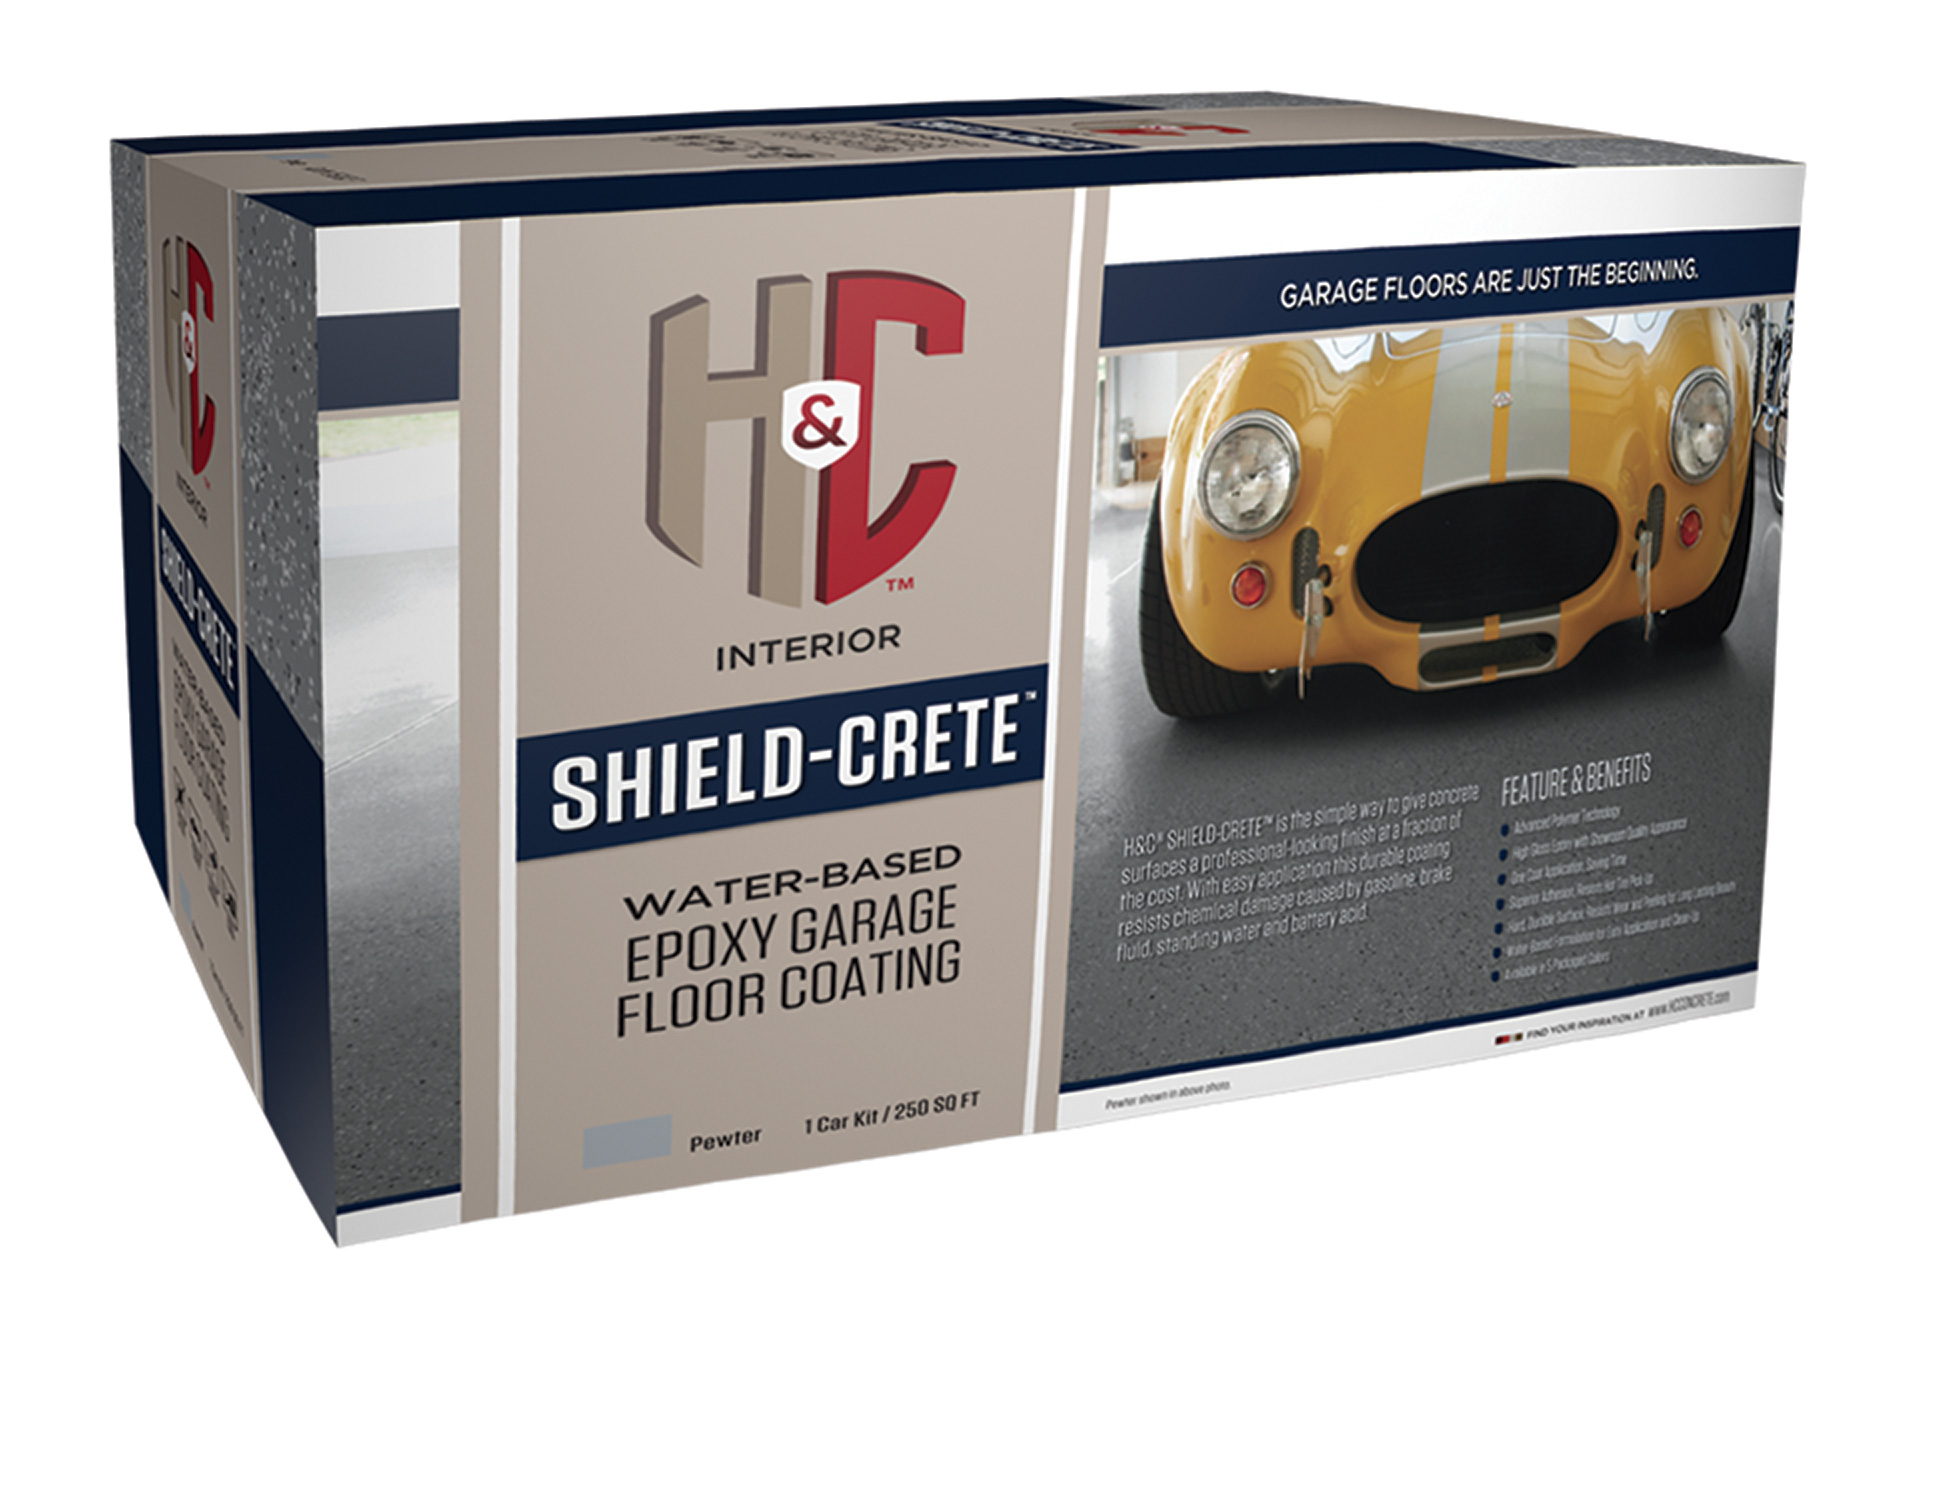 SHIELD-CRETE® EPOXY WATER-BASED